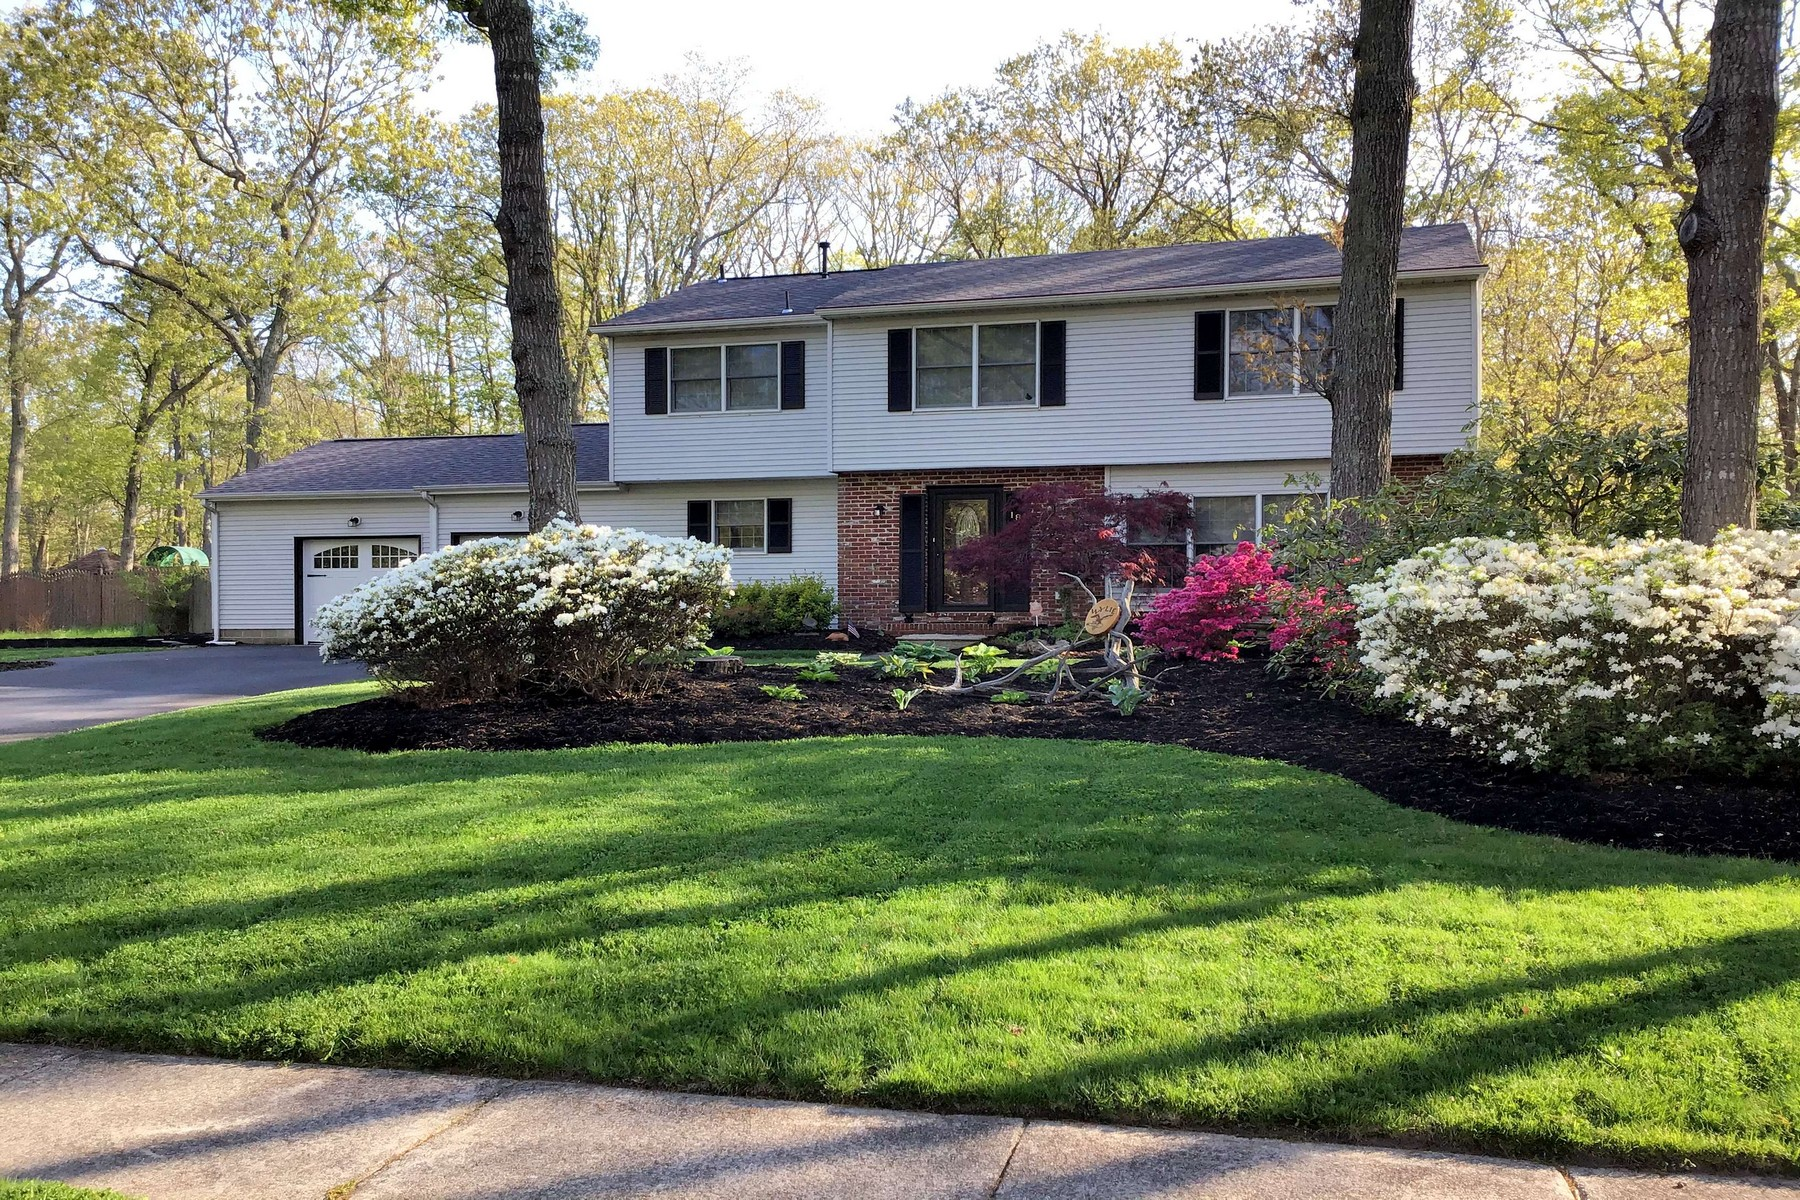 Single Family Homes for Active at Single Family Home in Desirable Neighborhood 18 Island View Terrace Seaville, New Jersey 08230 United States